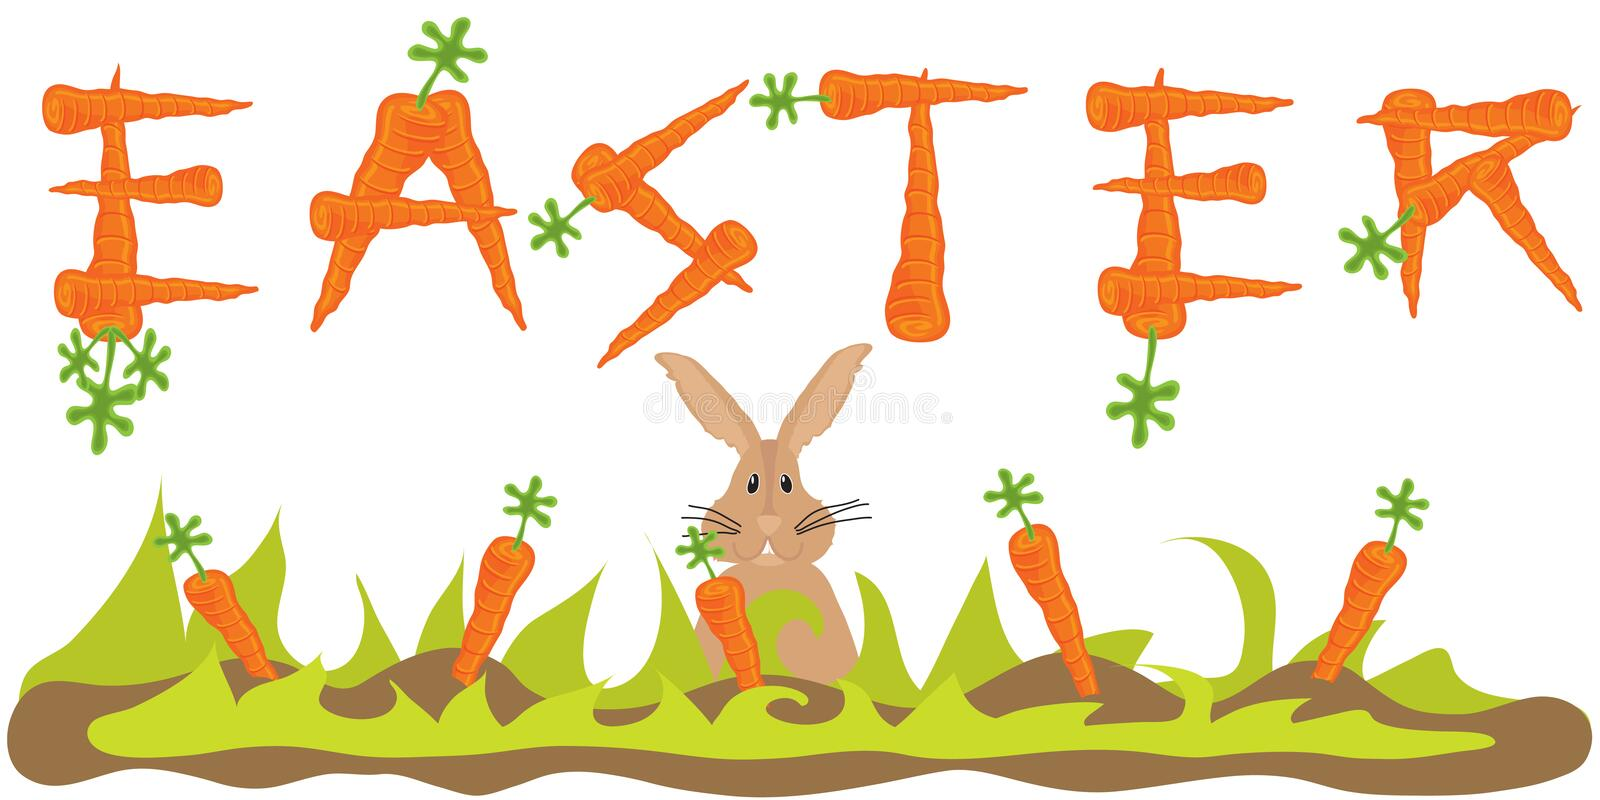 Download Easter Carrot Banner With Easter Bunny Stock Photos - Image: 8321493